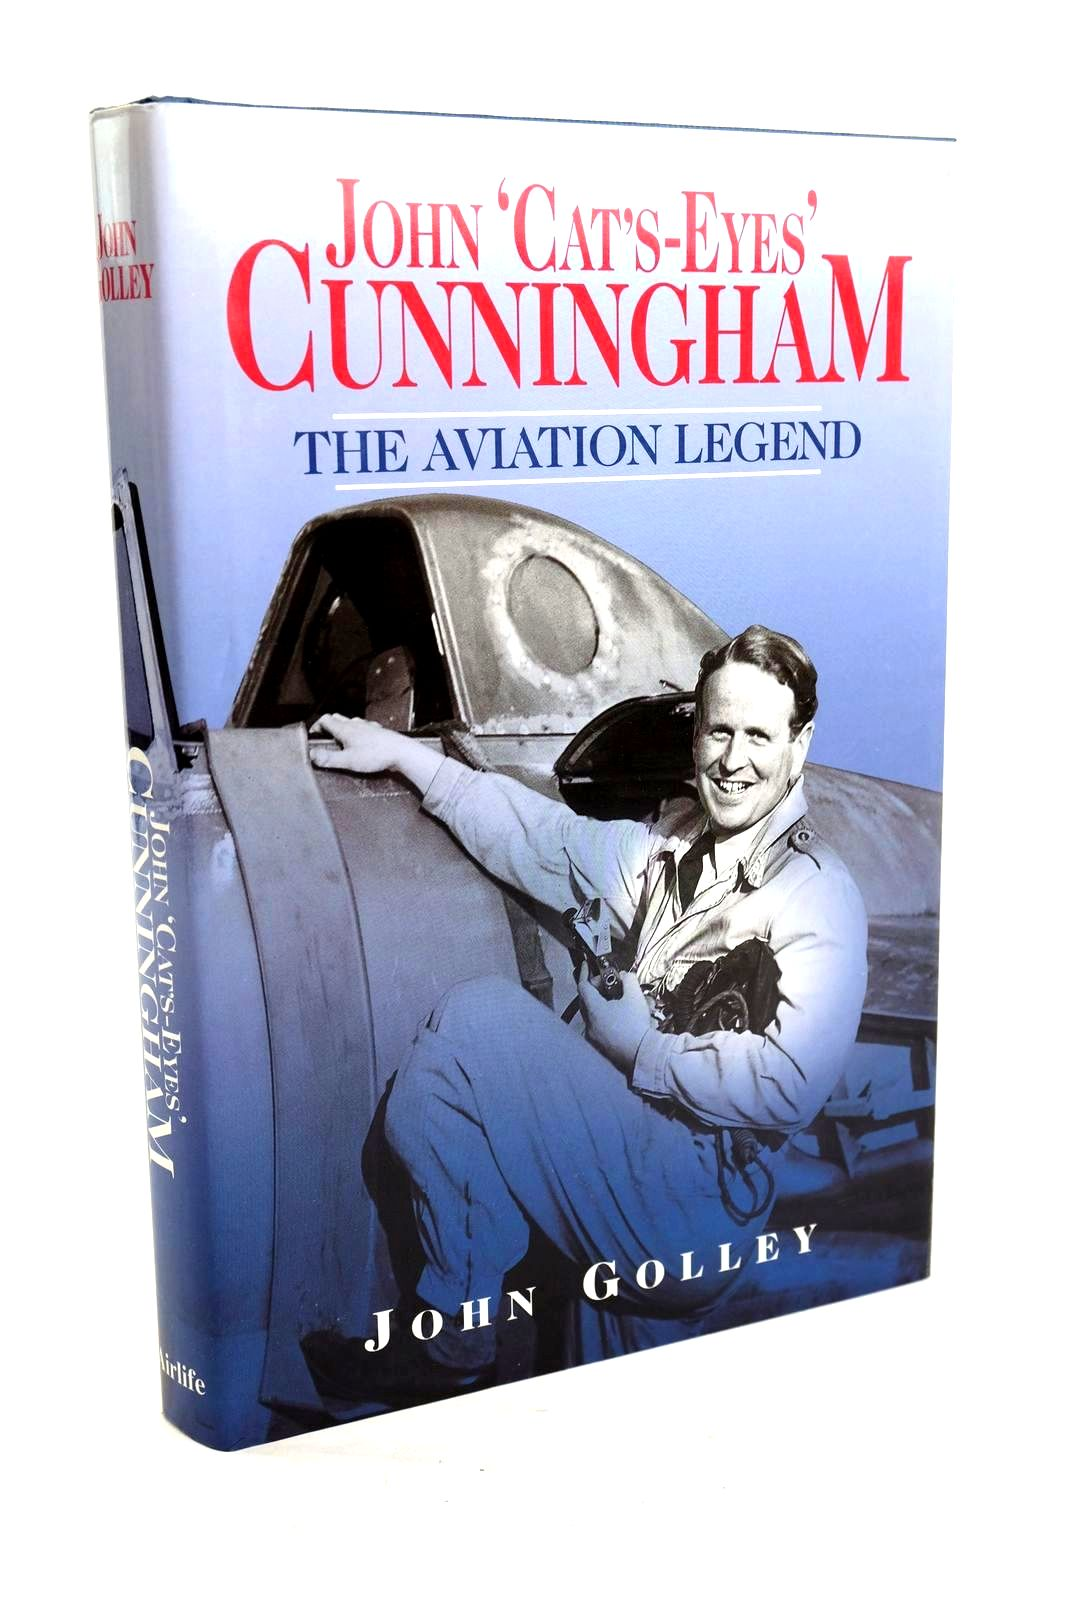 Photo of JOHN CAT'S-EYES CUNNINGHAM THE AVIATION LEGEND- Stock Number: 1320214